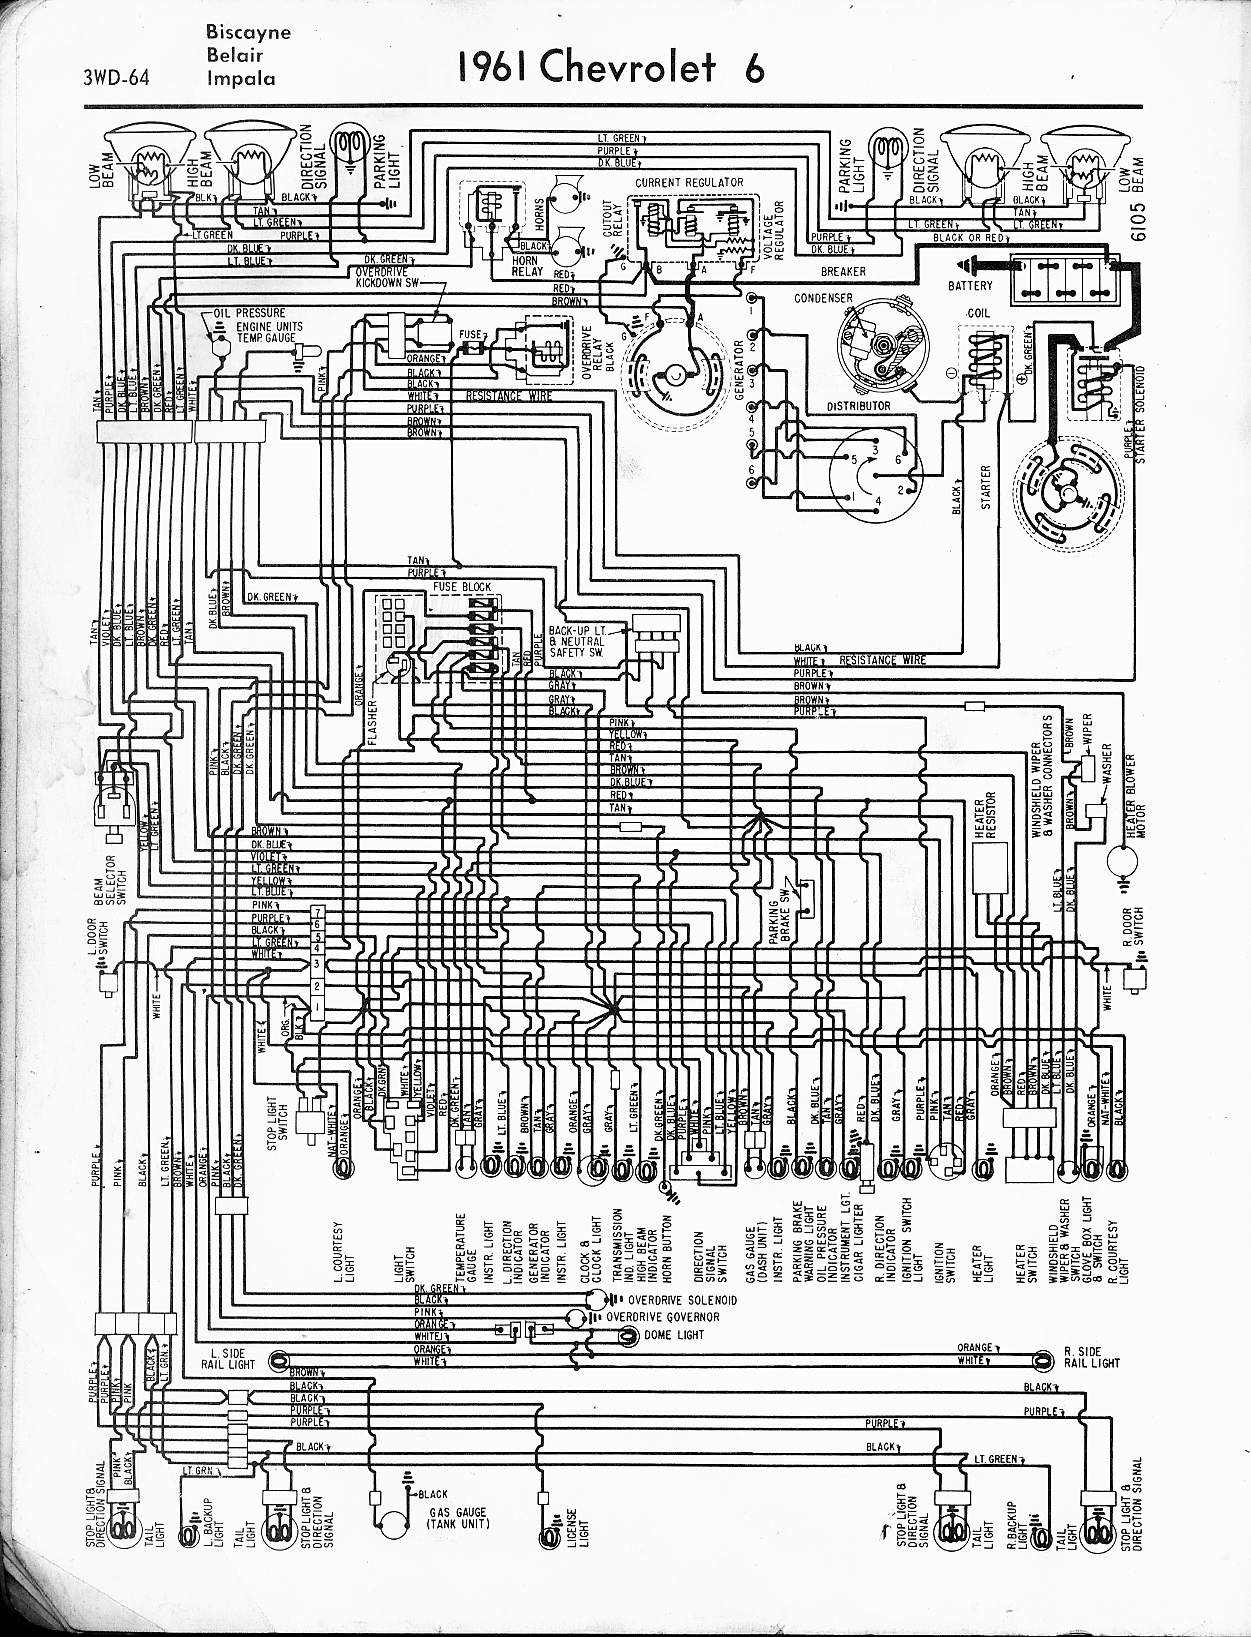 2001 Chevy Impala Wiring Harness Diagram on 1964 corvette ground locations wiring diagram